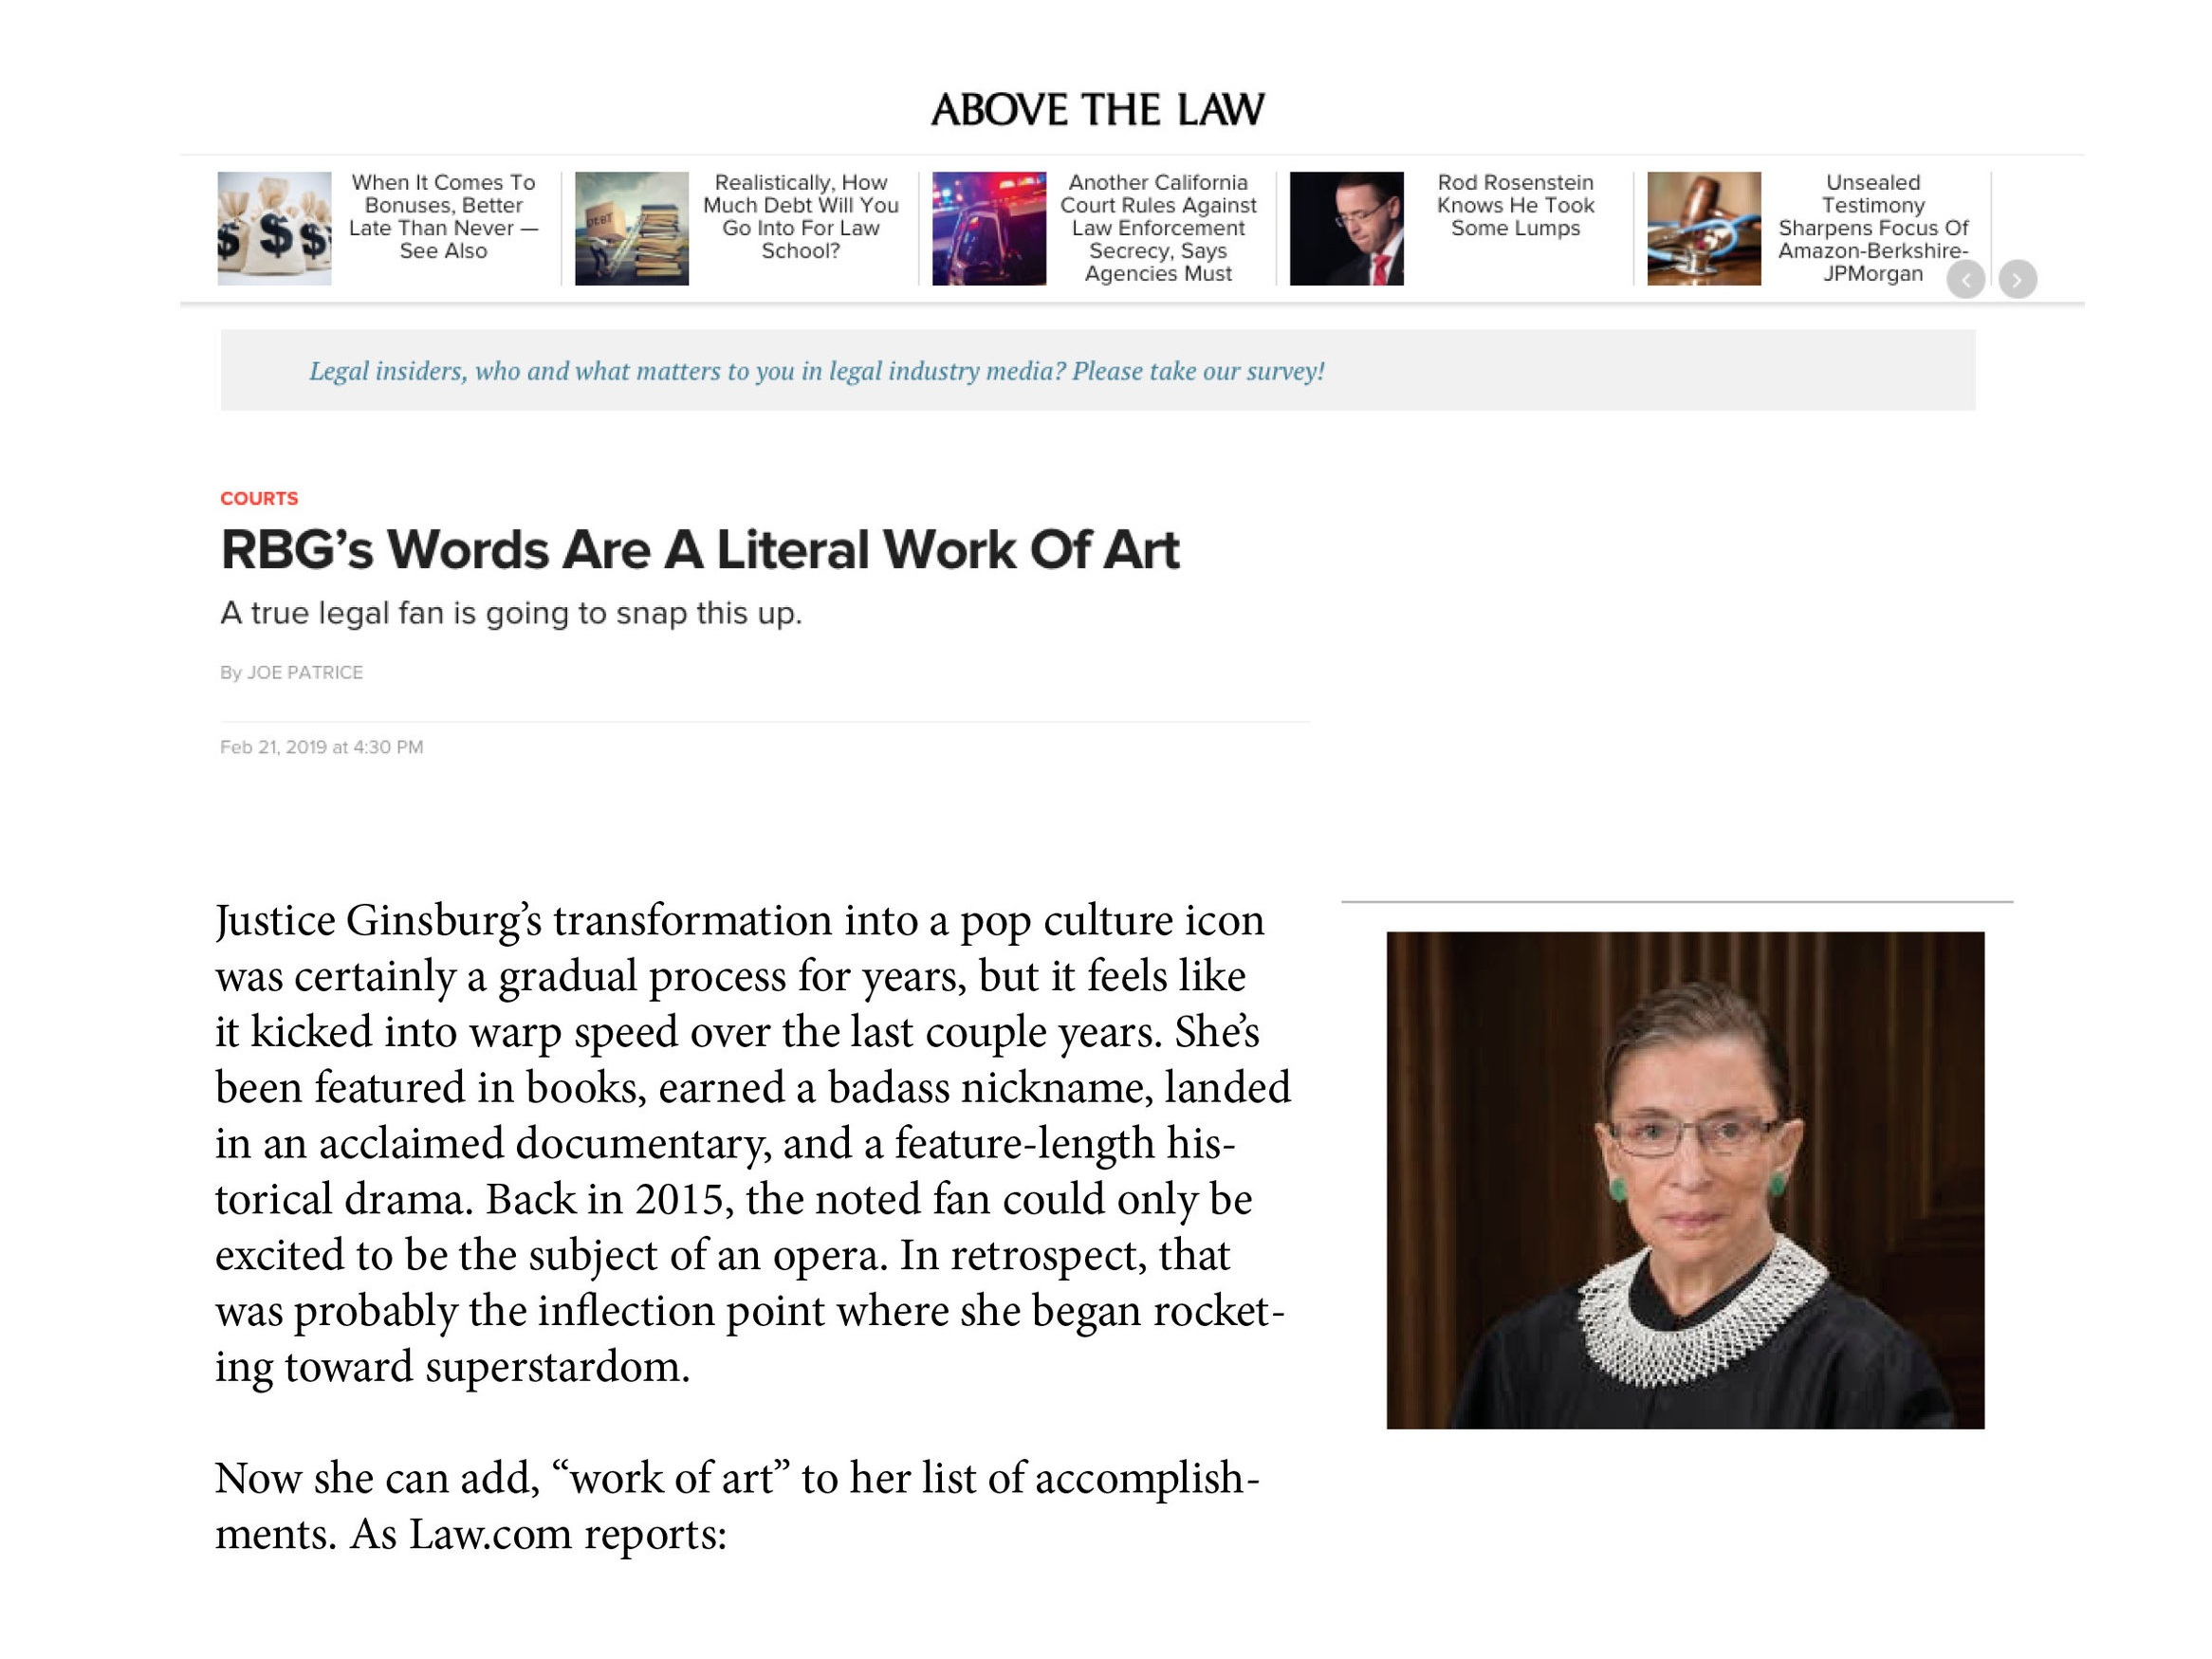 RBG's Words Are a Literal Work of ArtBy Joe PatriceAbove the Law, February, 2019 -